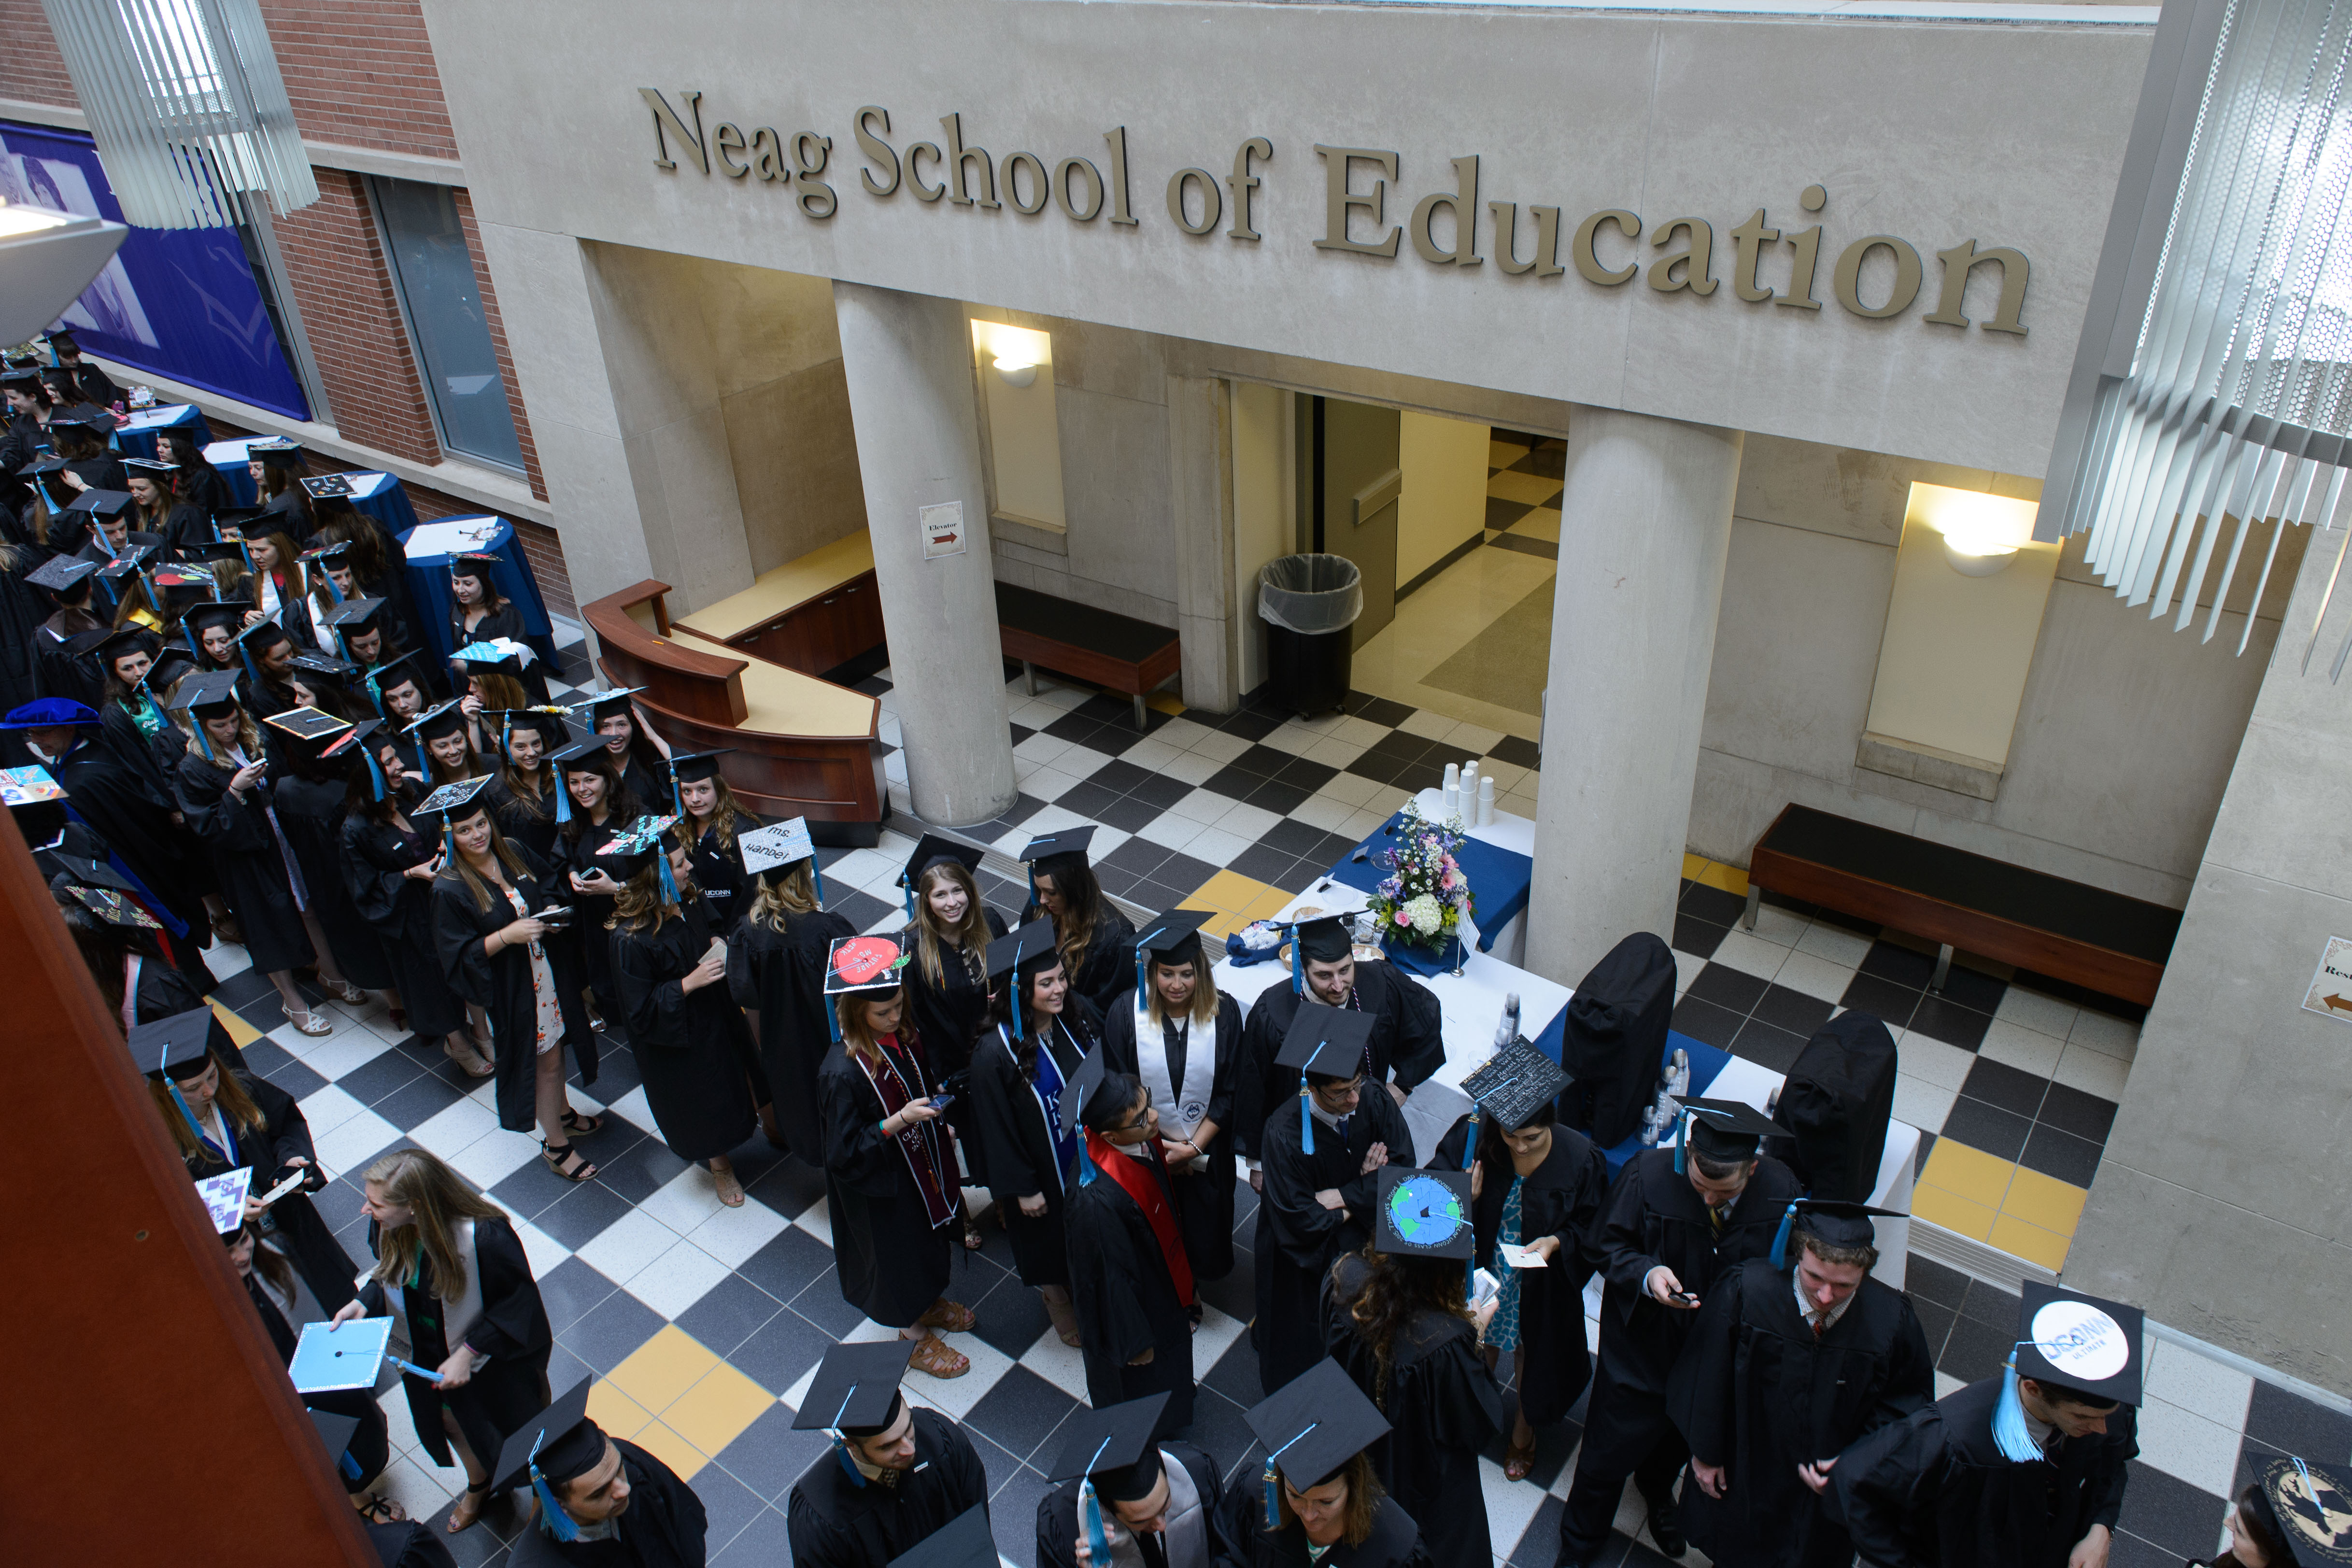 Neag School of Education degree candidates prepare for their Commencement procession at the Gentry Building on May 10, 2015. (Peter Morenus/UConn Photo)